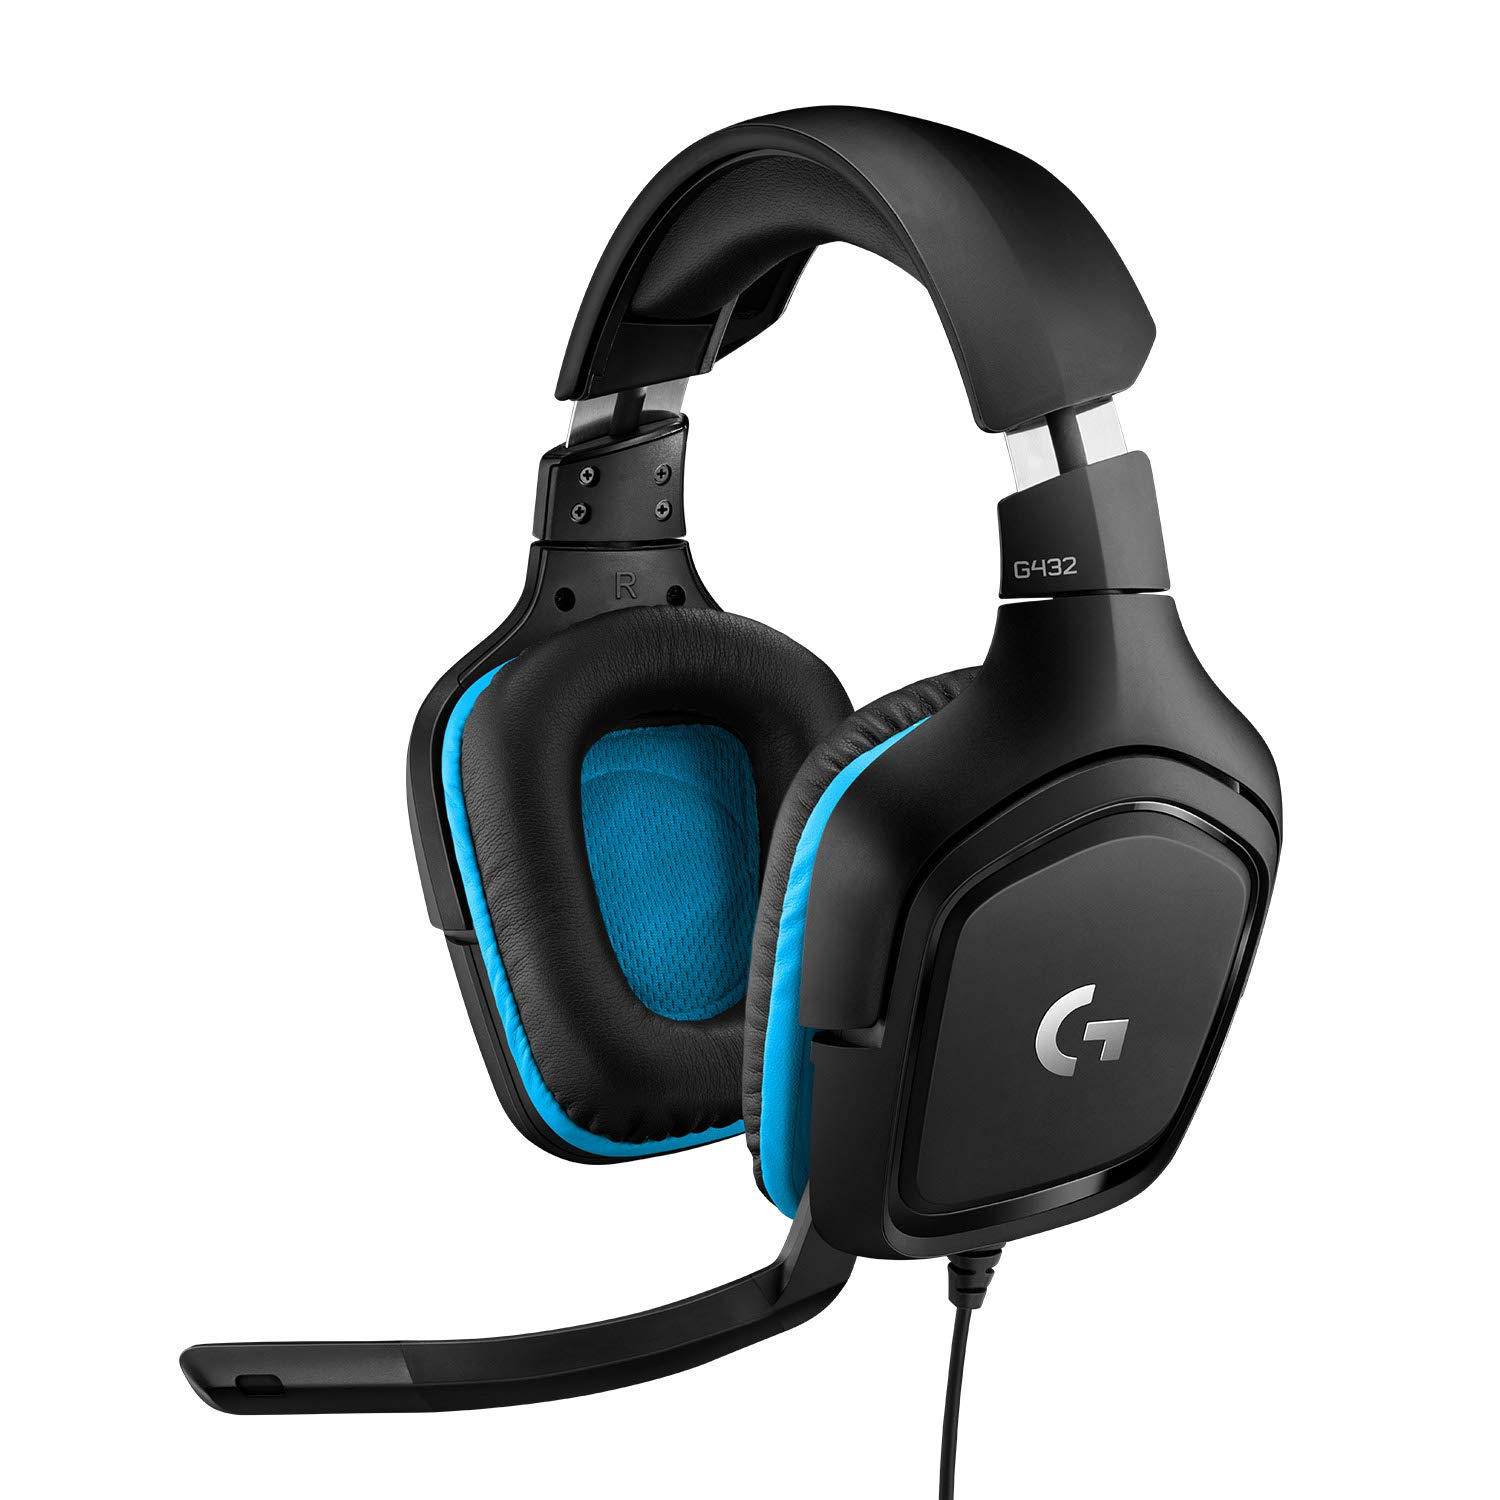 Logitech G432 Auriculares Gaming con Cable, Sonido 7.1 Surround, DTS Headphone:X 2.0, Transductores 50mm, USB y Jack Audio 3, 5mm, Microfóno Volteable, Peso Ligero, PC/Mac/Xbox One/PS4/Nintendo Switch: Logitech: Amazon.es: Electrónica